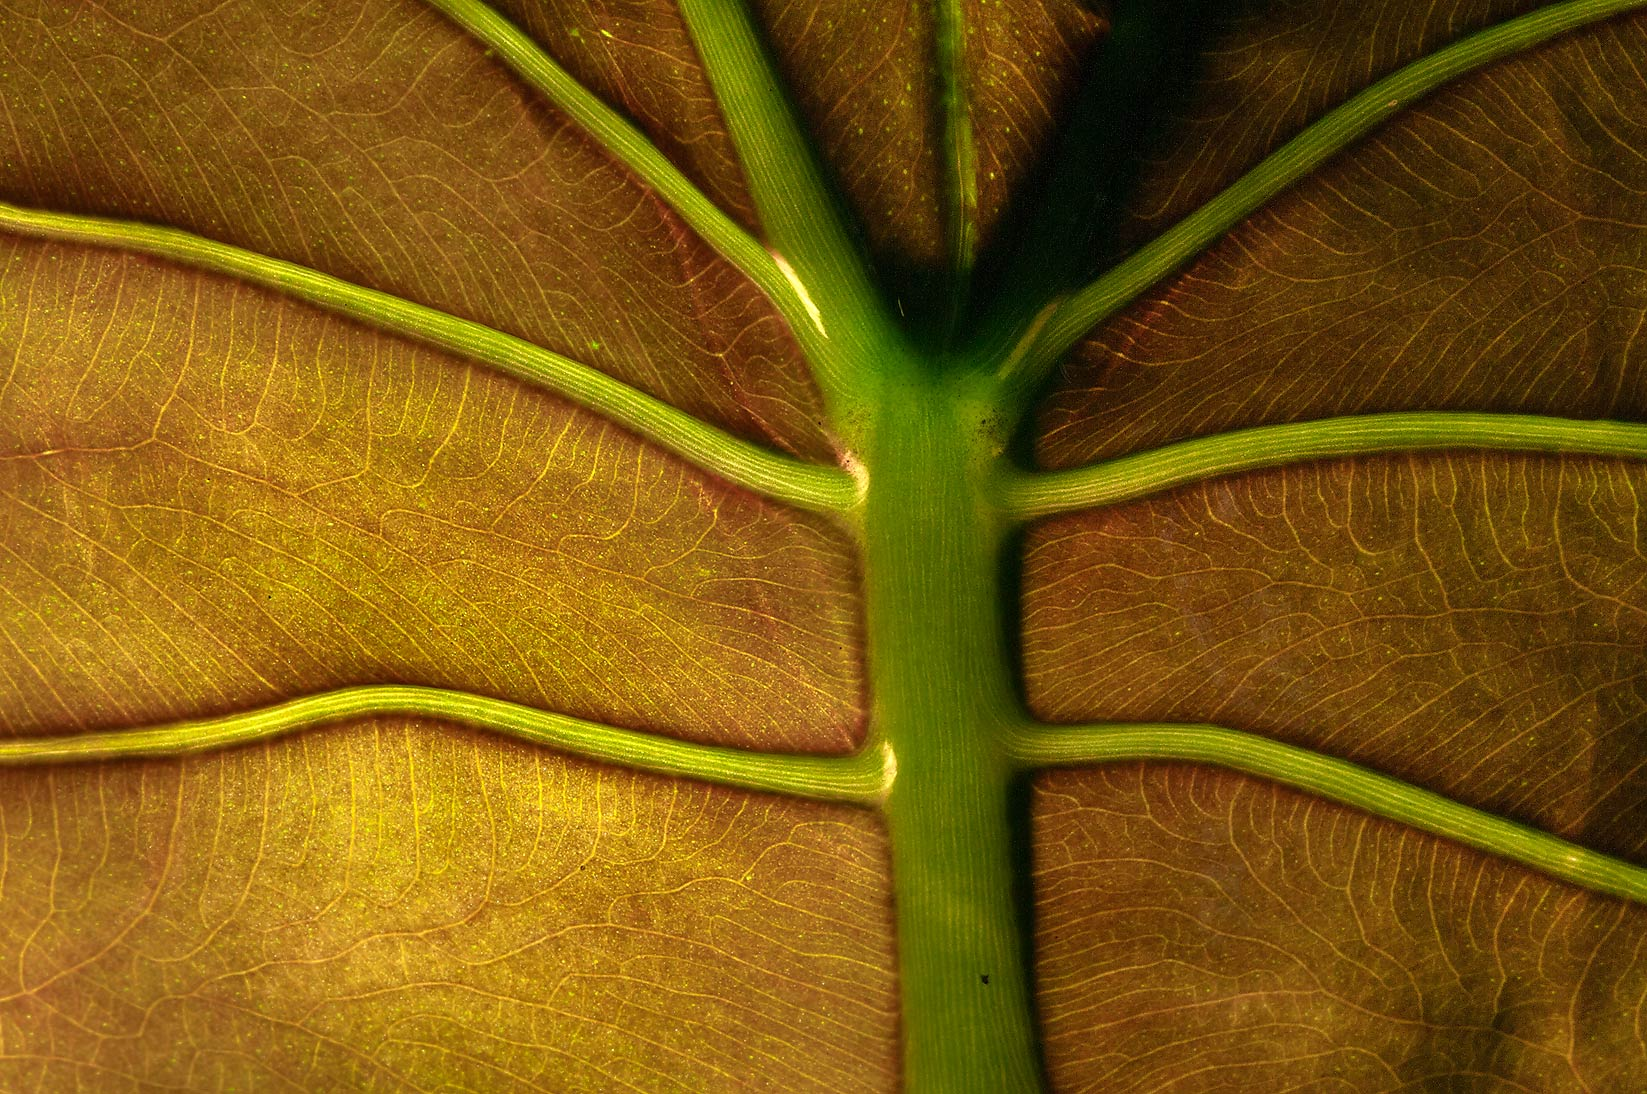 Venation of a leaf of an aquatic plant in a...Institute. St.Petersburg, Russia